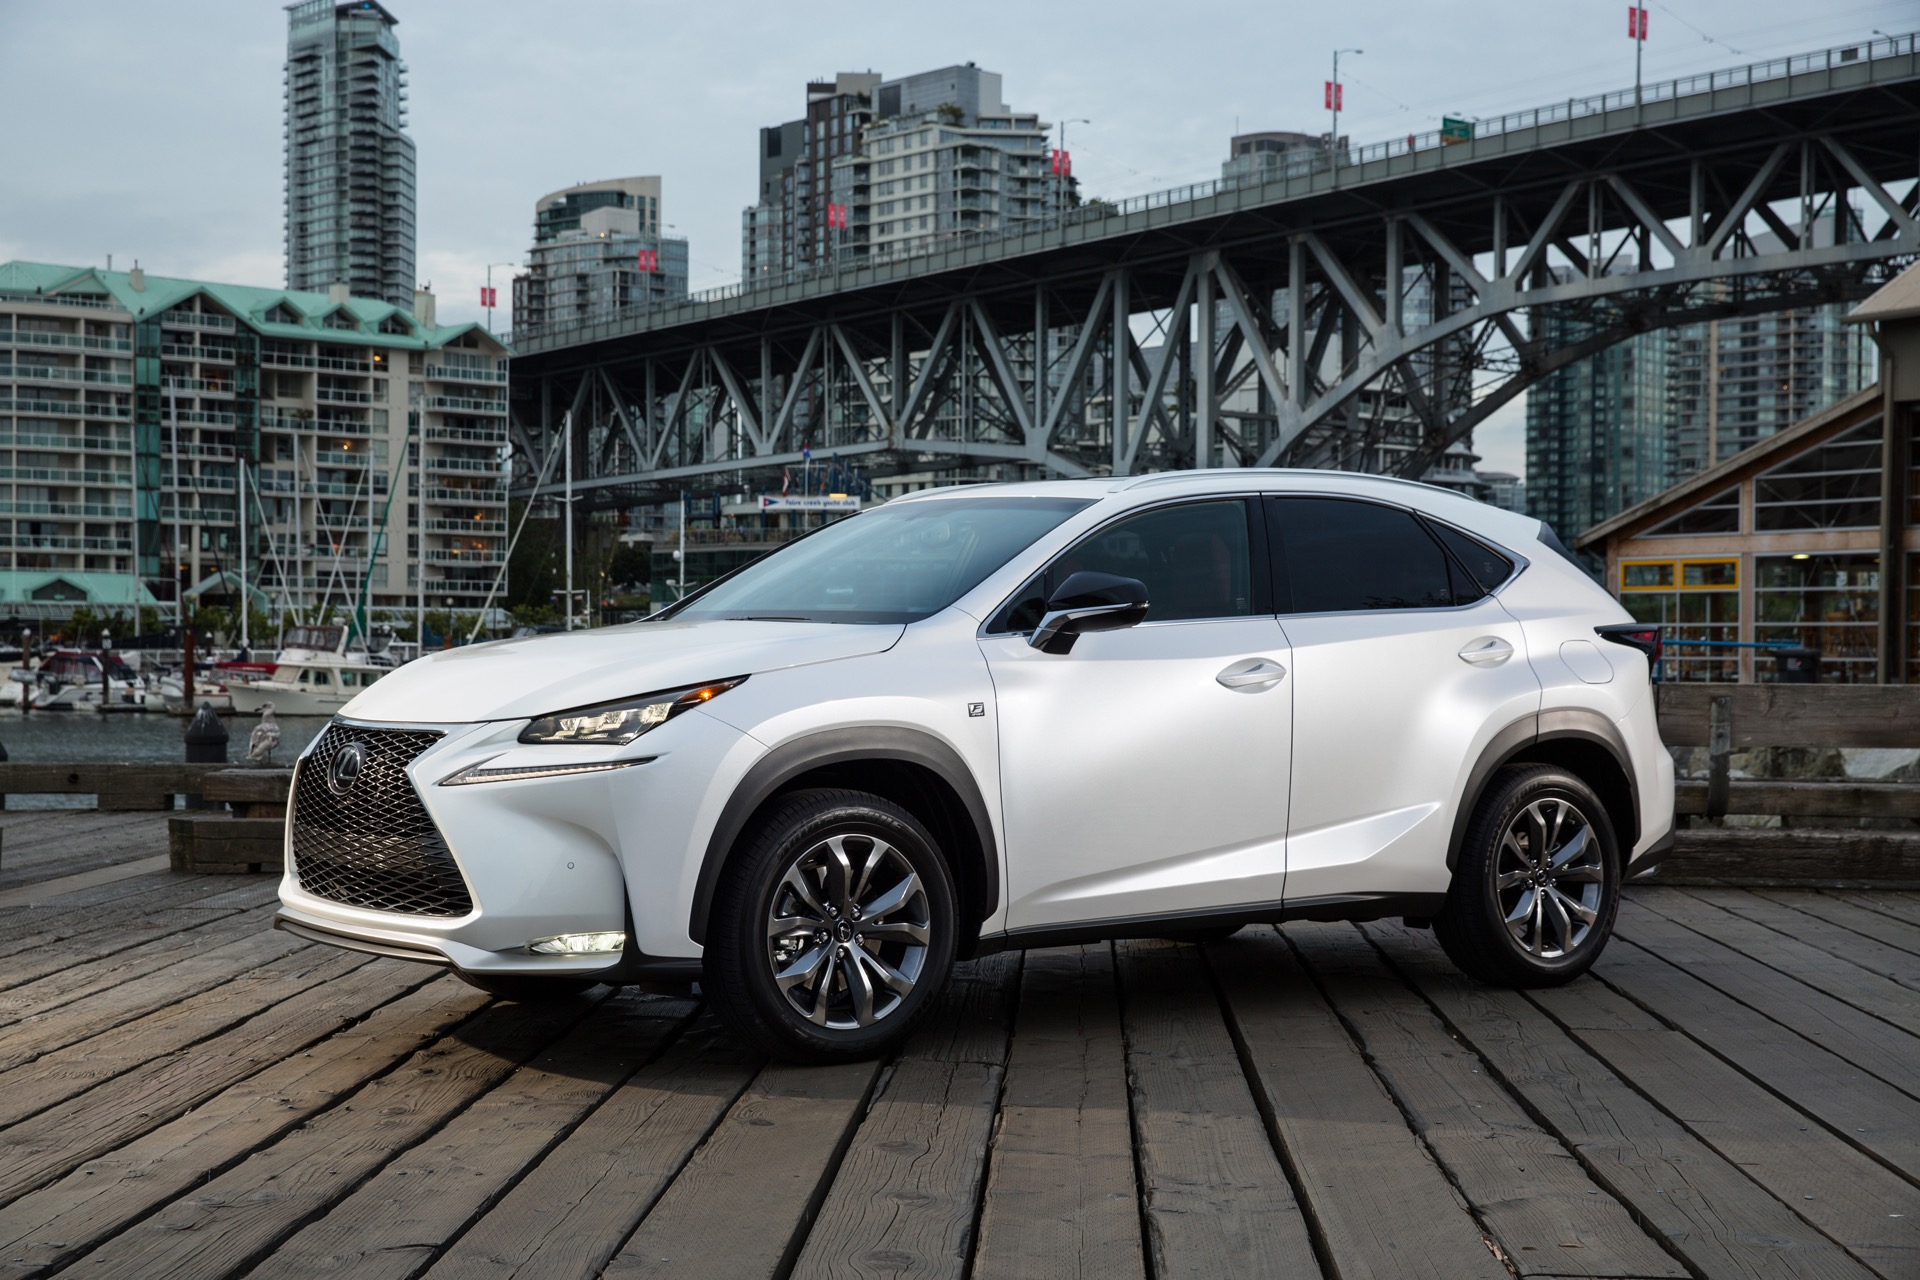 Half of car buyers hate haggling but lexus dealers resist fixed prices